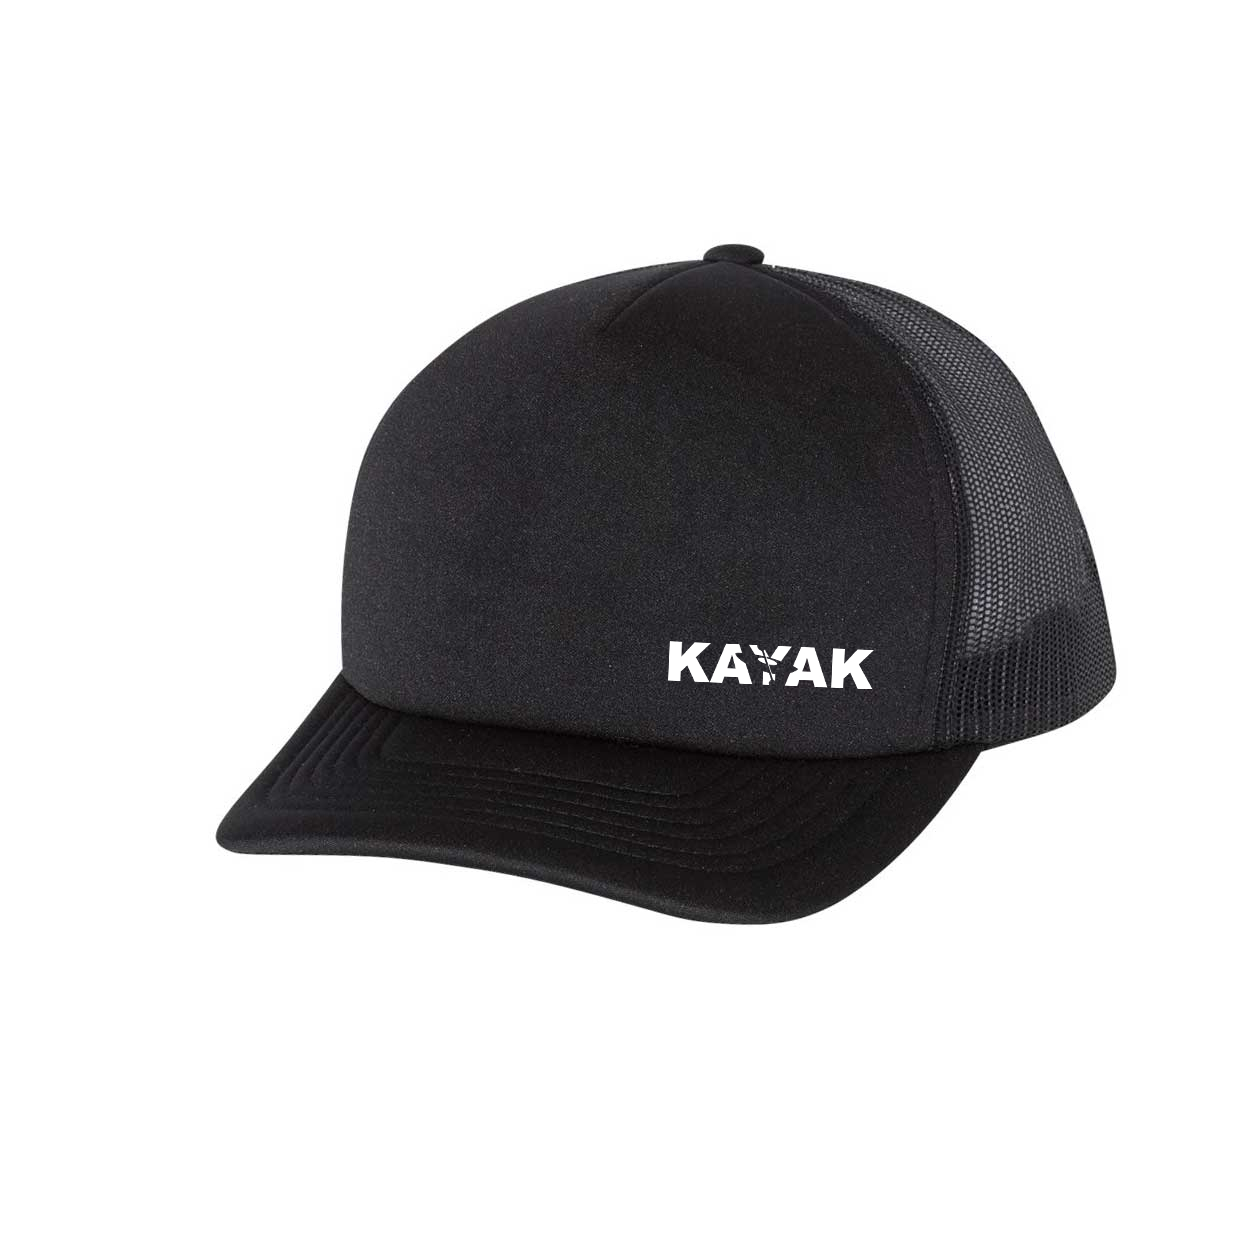 Kayak Hull Logo Night Out Premium Foam Trucker Snapback Hat Black (White Logo)